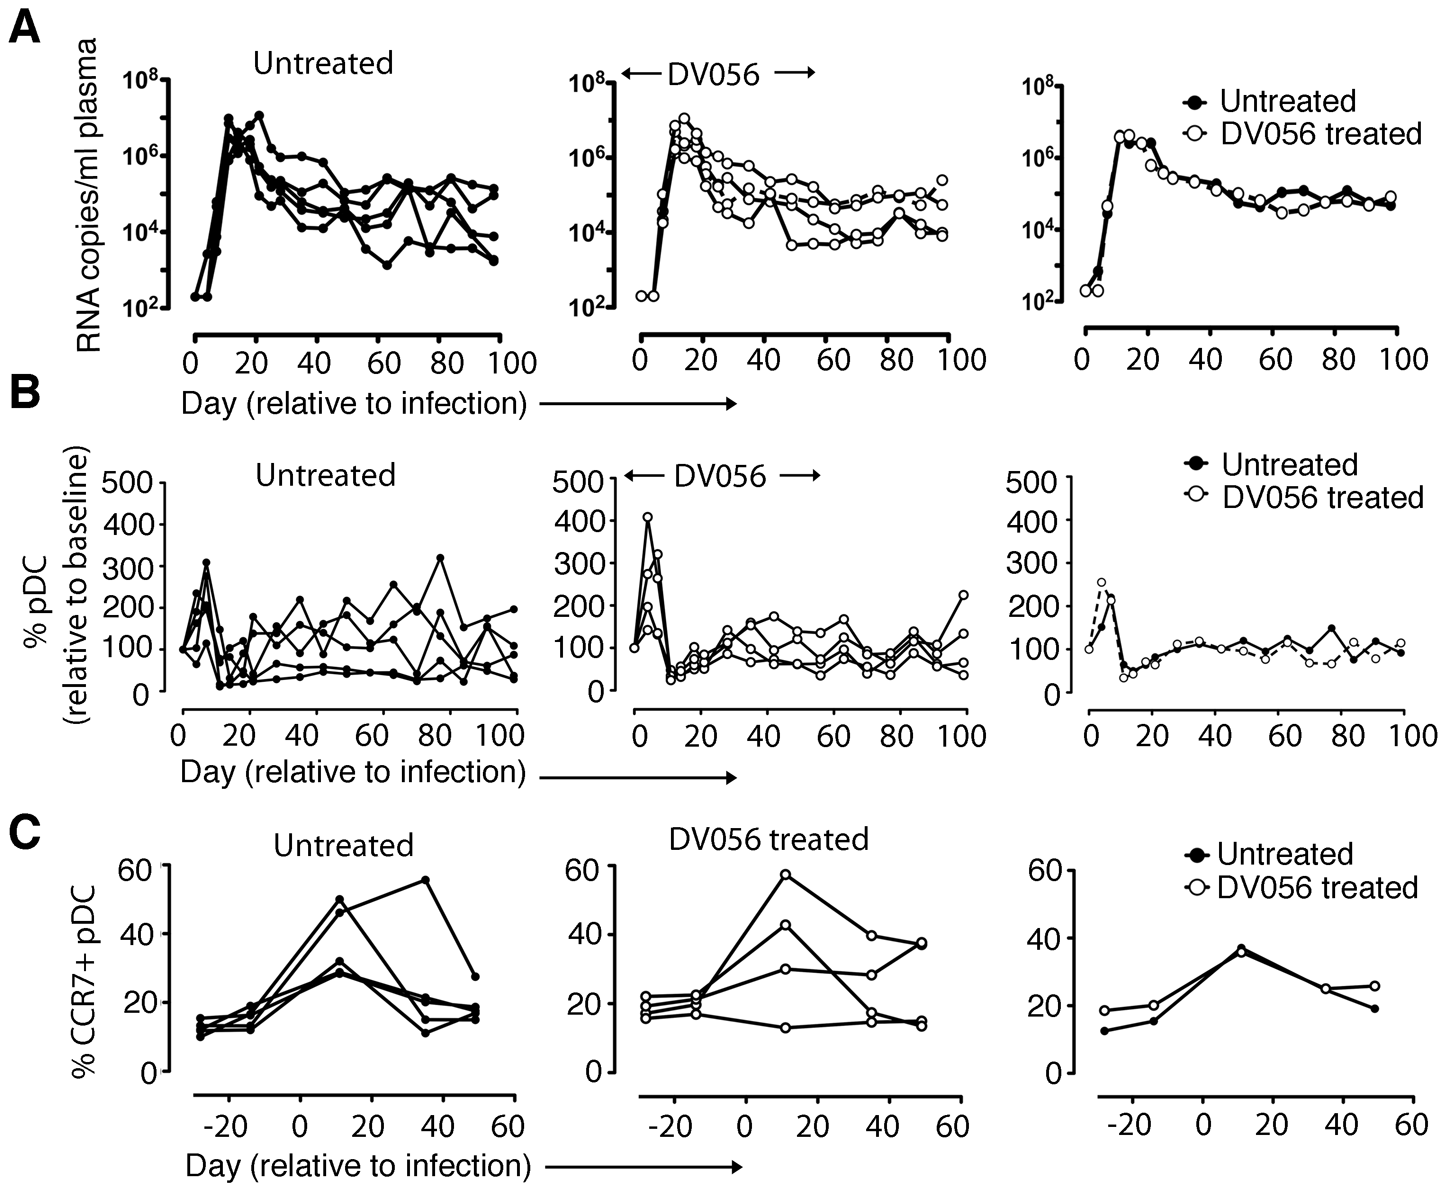 TLR7 and TLR9 blockade does not impact virus load or pDC kinetics.